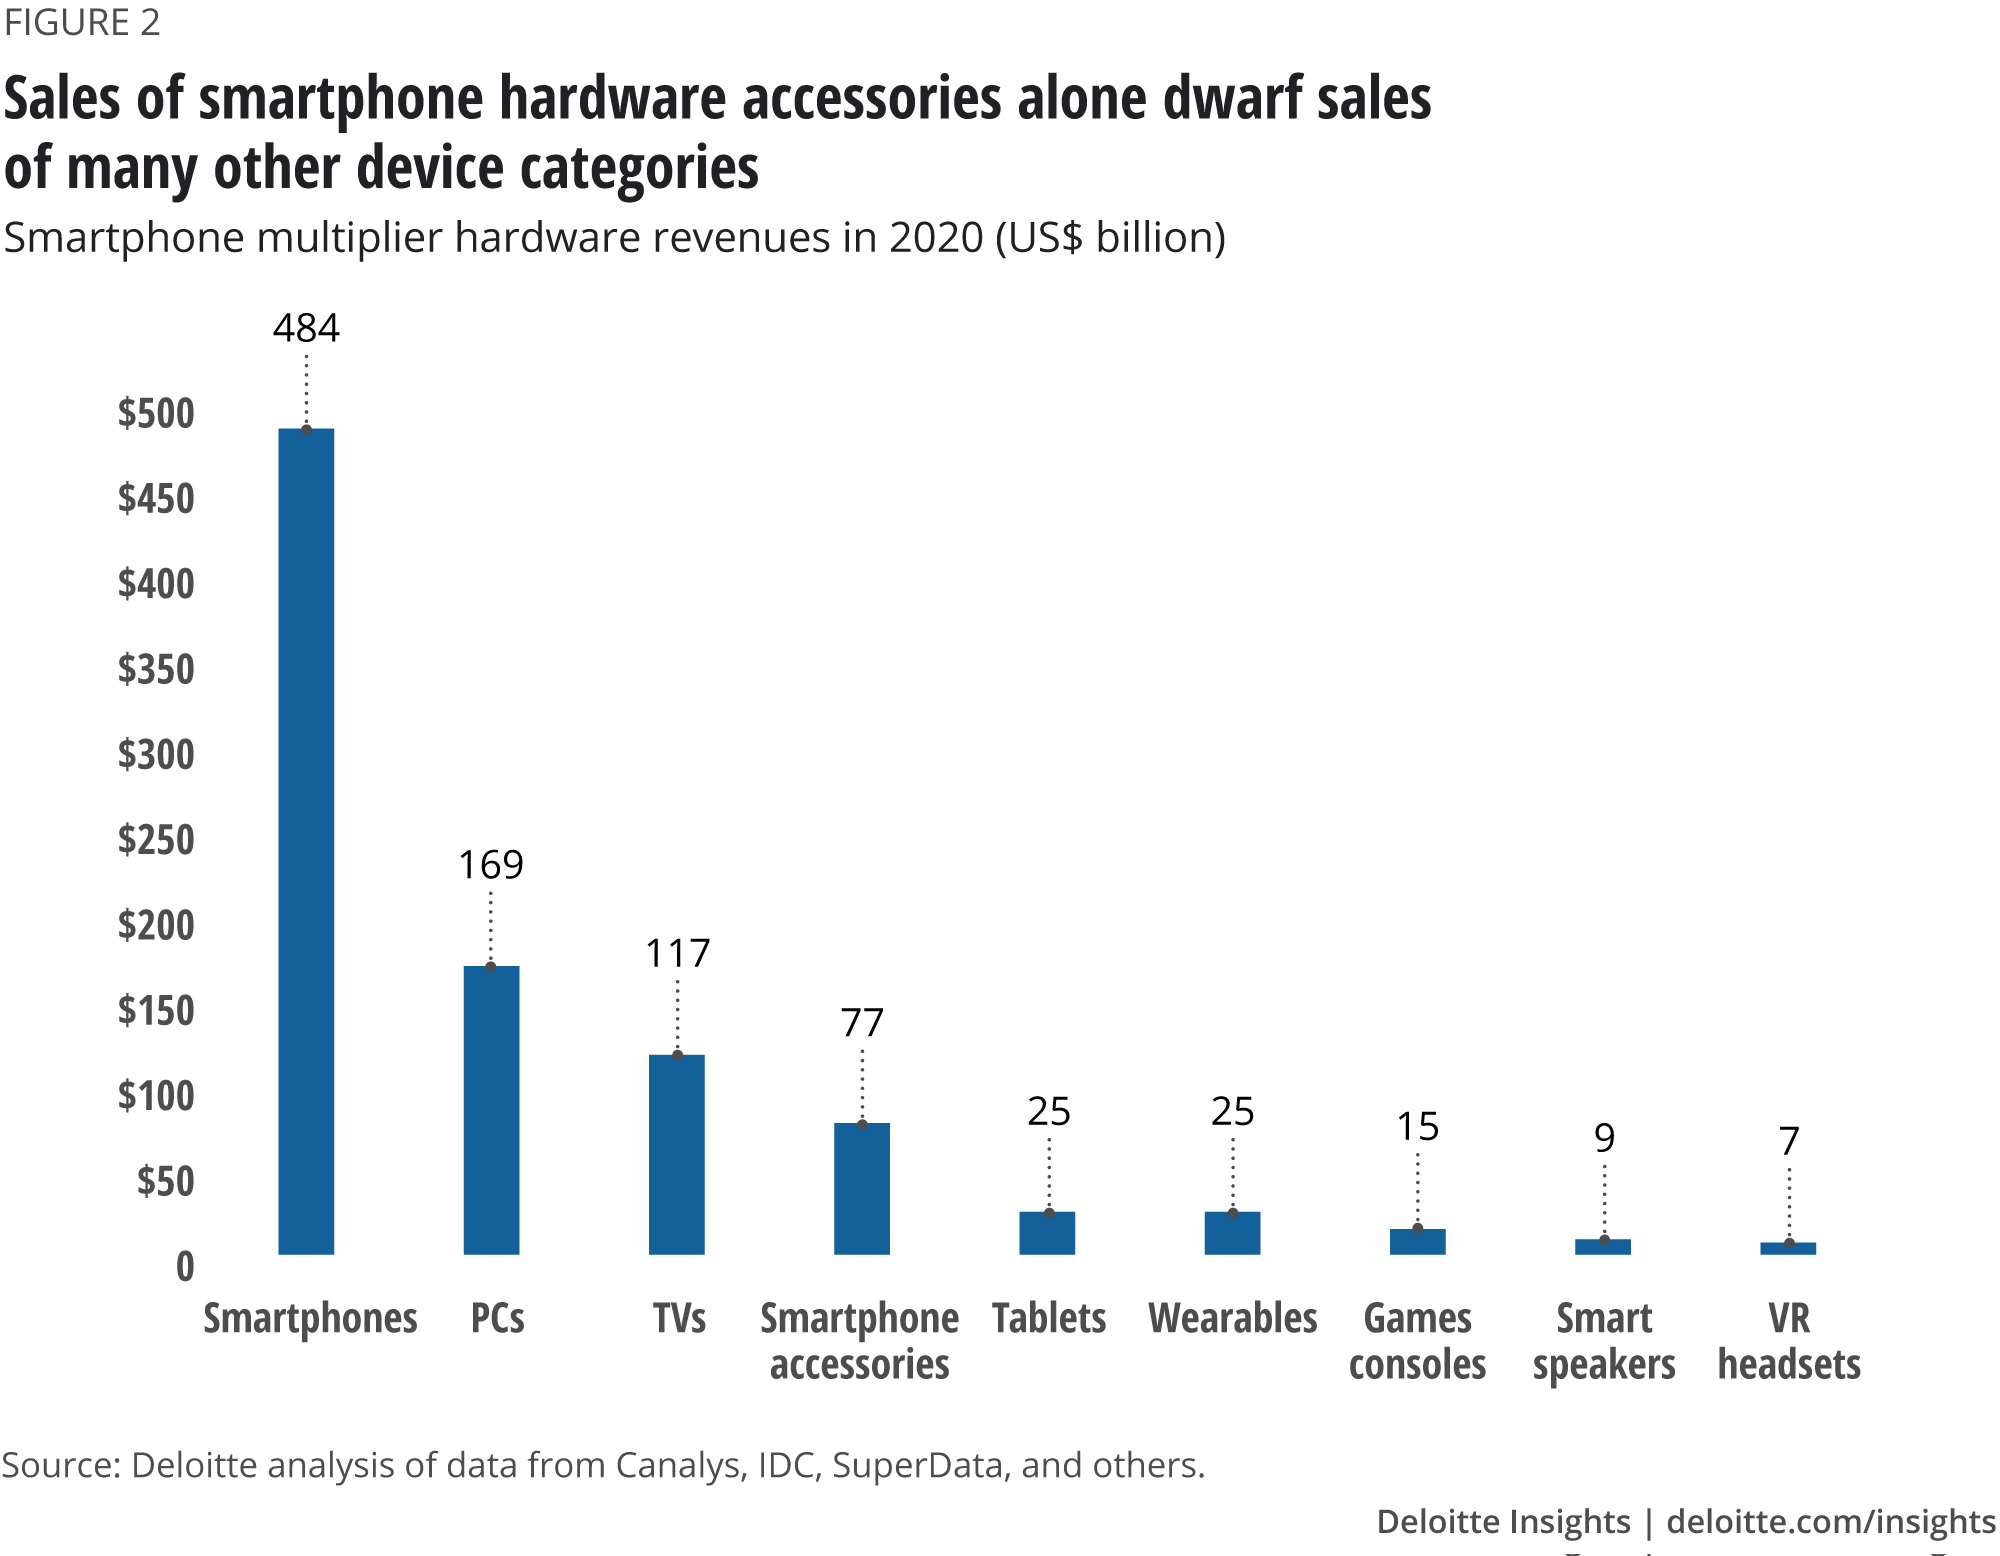 Sales of smartphone hardware accessories alone dwarf sales of many other device categories